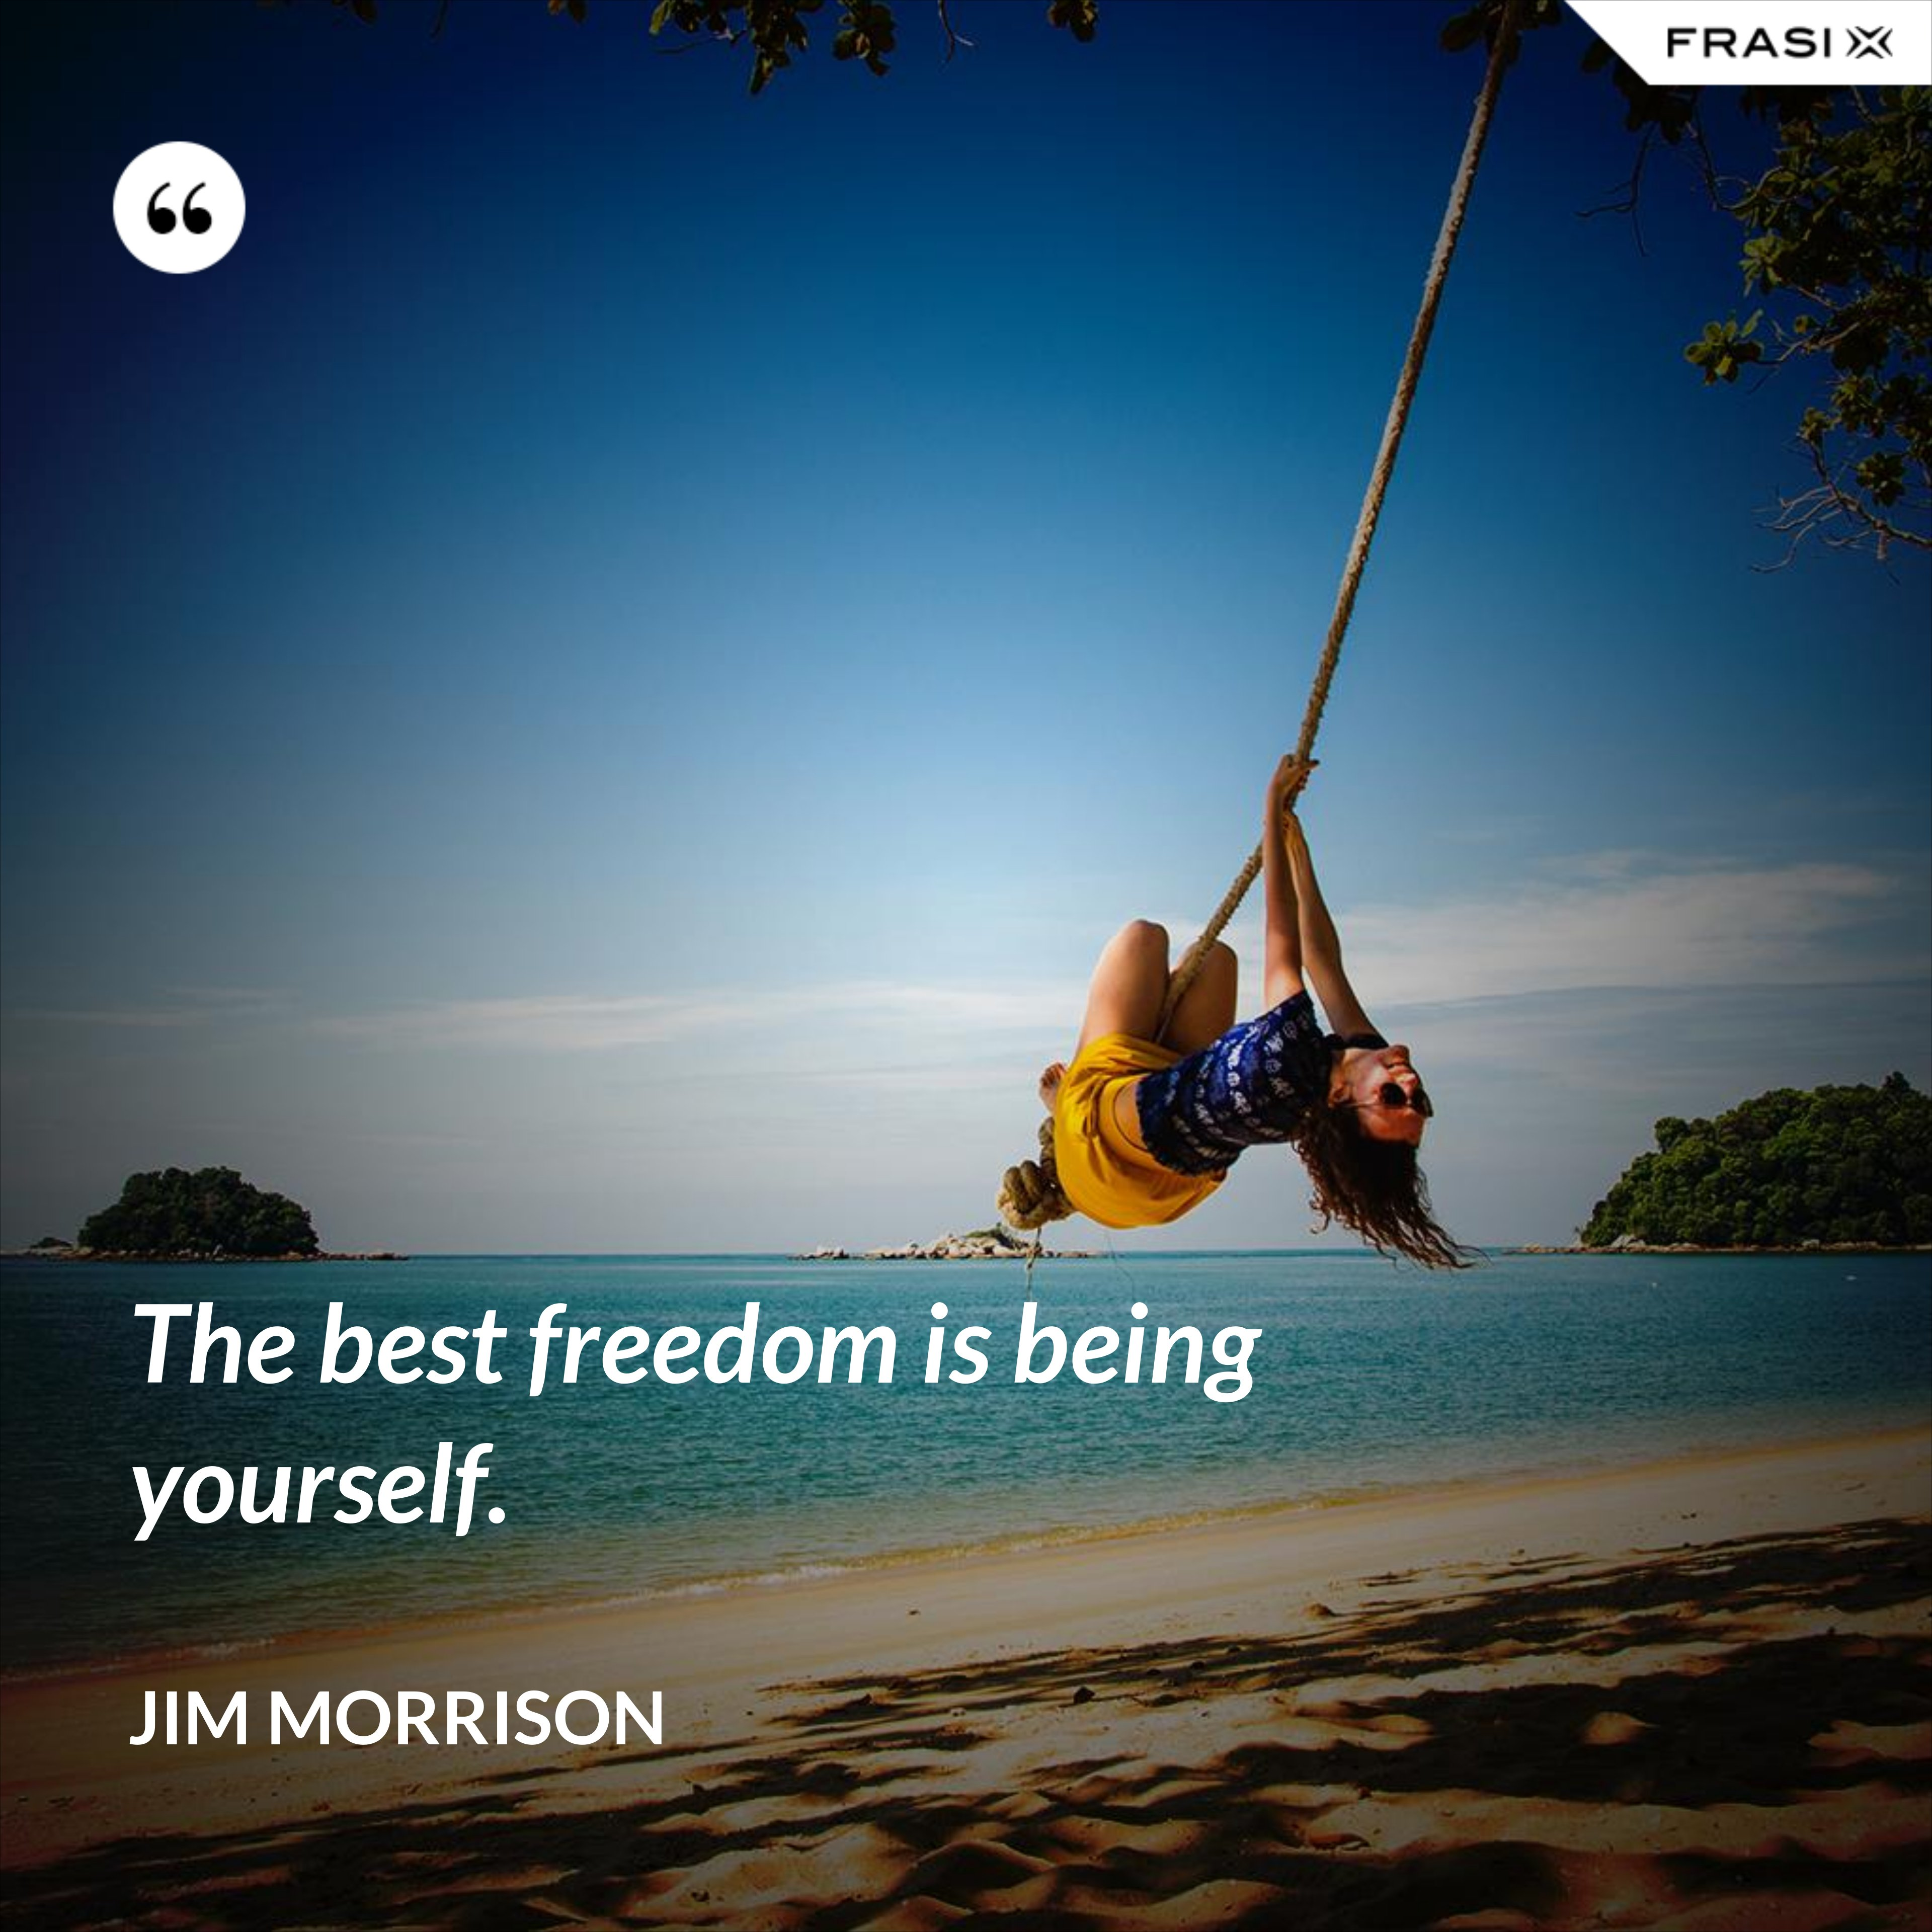 The best freedom is being yourself. - Jim Morrison